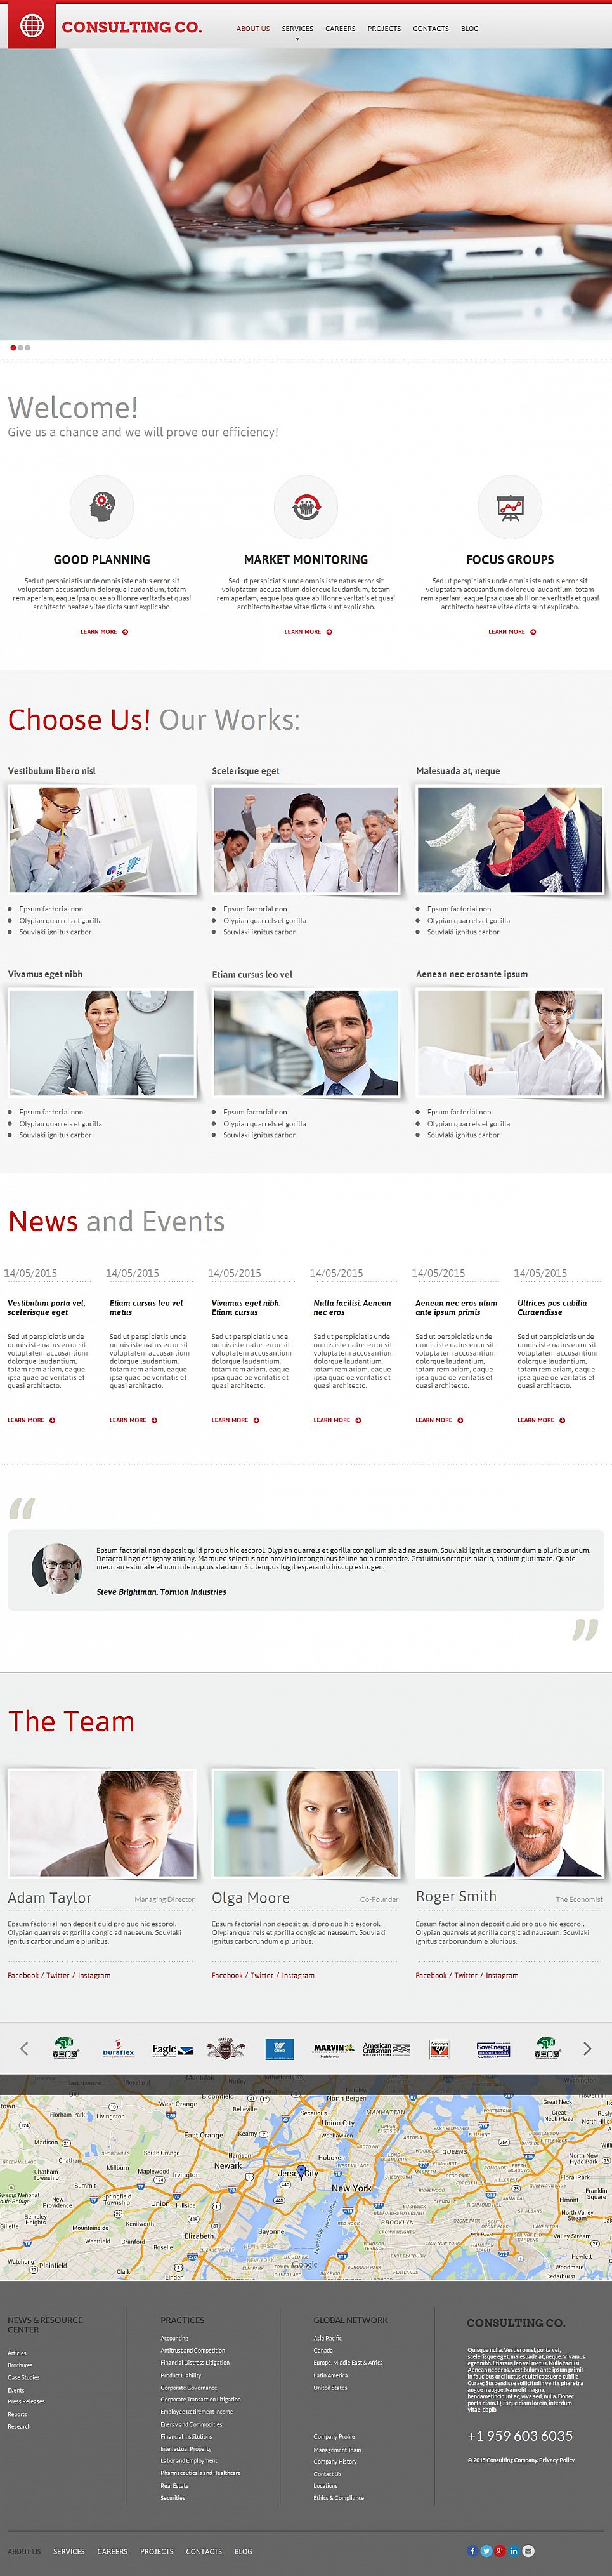 CMS Website Template for Consulting Business - image